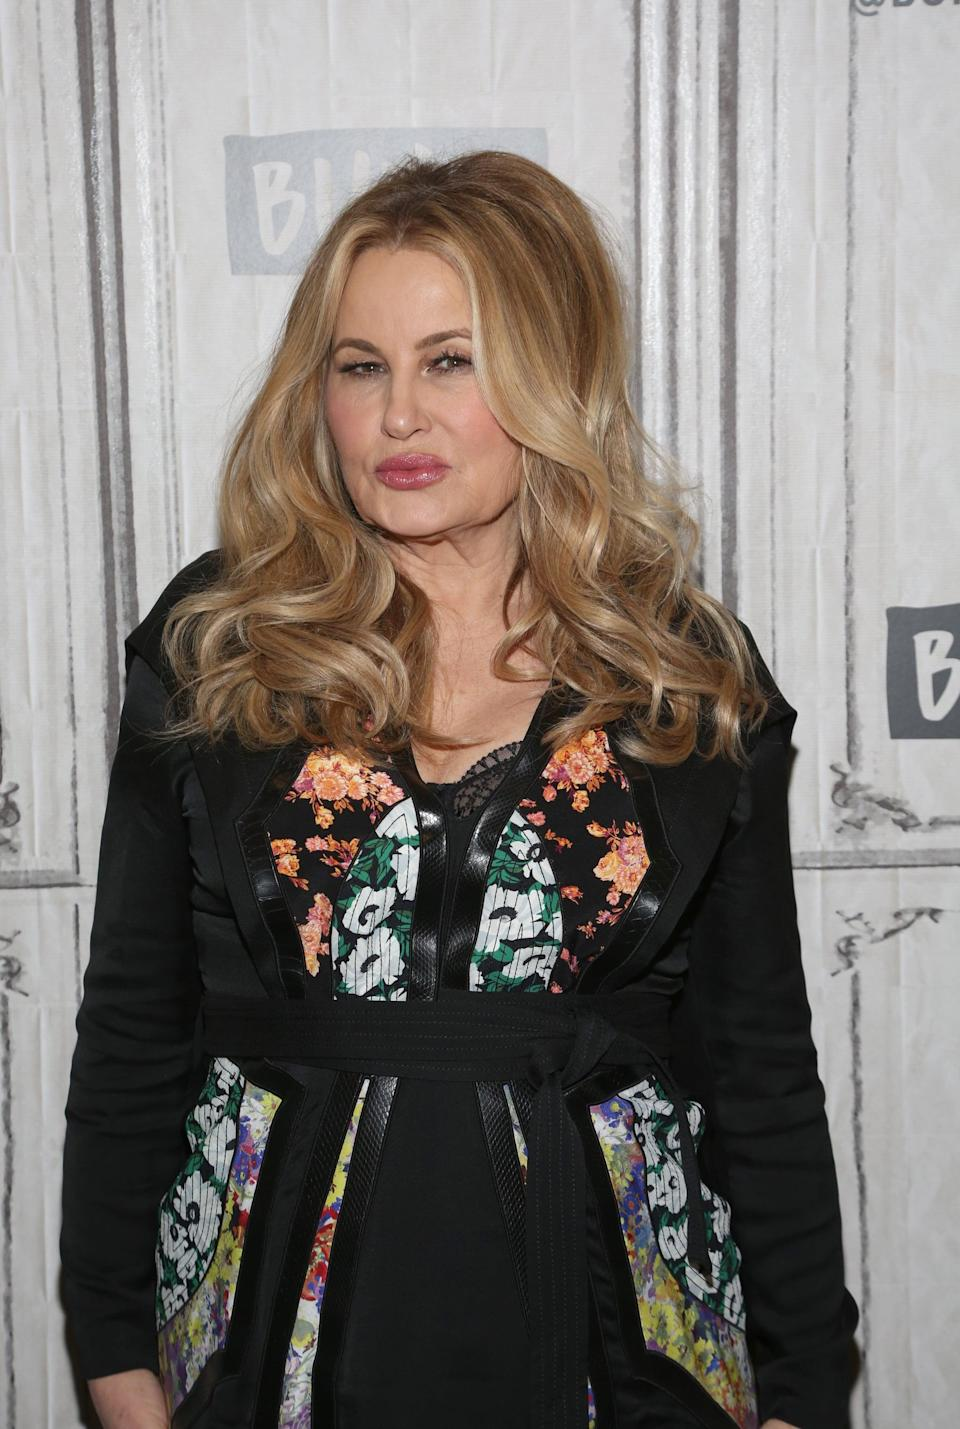 """<p>Coolidge has made a career out of memorable, comedic supporting roles, most notably as <strong>Legally Blonde</strong>'s Paulette. She also spent several years, from 2012 to 2017, on the sitcom <strong>2 Broke Girls</strong>. Most recently, she appeared in <strong>Promising Young Woman</strong> as the mother of <a class=""""link rapid-noclick-resp"""" href=""""https://www.popsugar.com/Carey-Mulligan"""" rel=""""nofollow noopener"""" target=""""_blank"""" data-ylk=""""slk:Carey Mulligan"""">Carey Mulligan</a>'s character.</p>"""